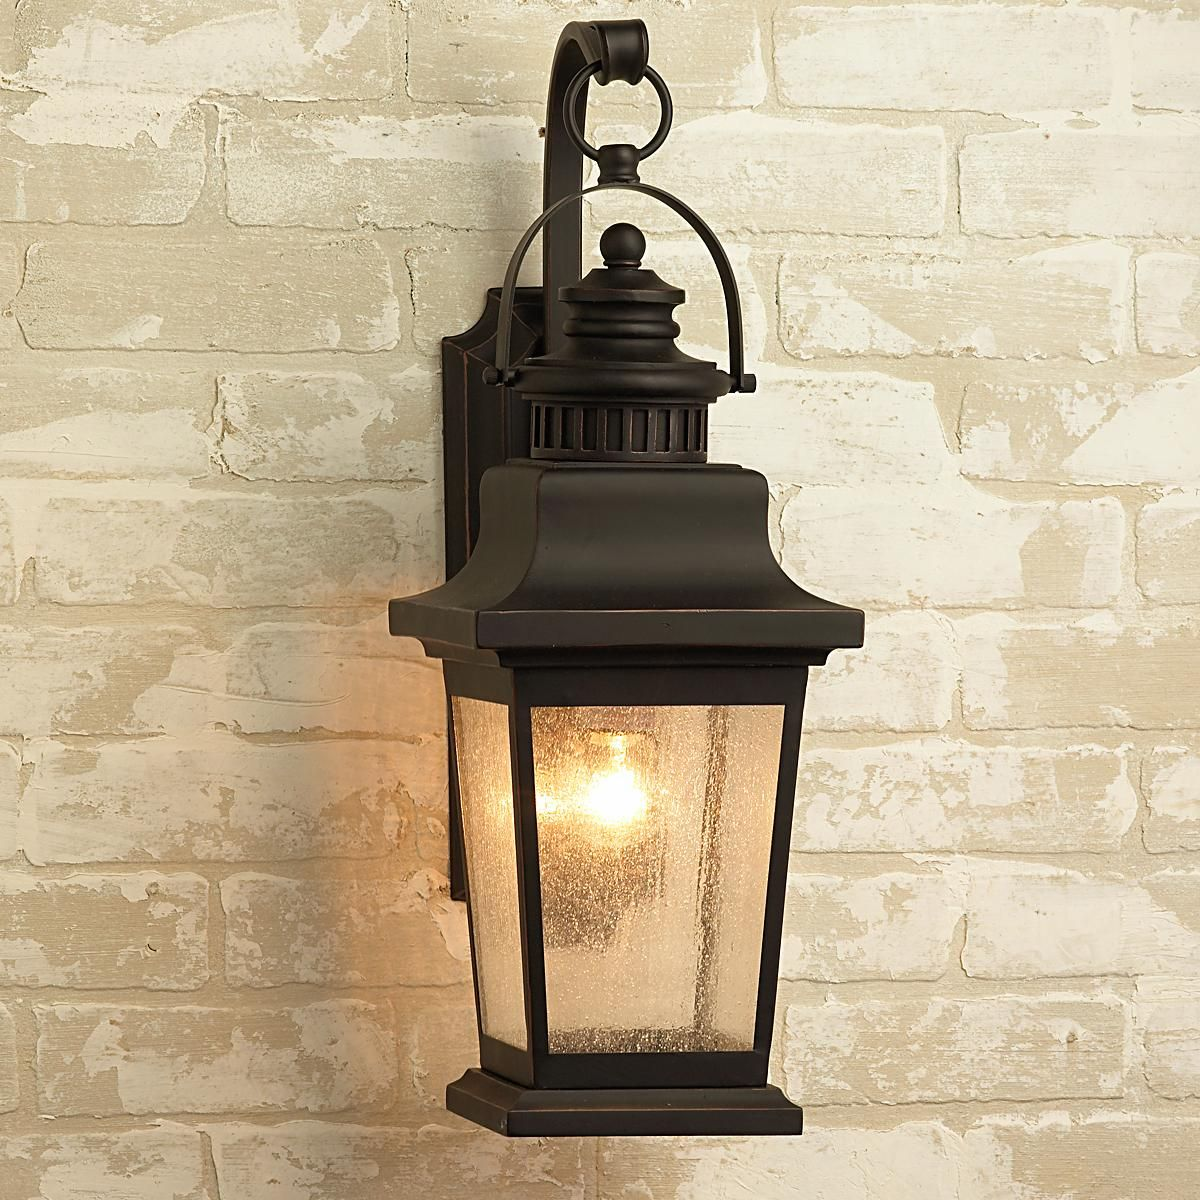 Trac Light Lantern Old Colony Outdoor Wall Mount Home: The 25+ Best Outdoor Wall Lantern Ideas On Pinterest